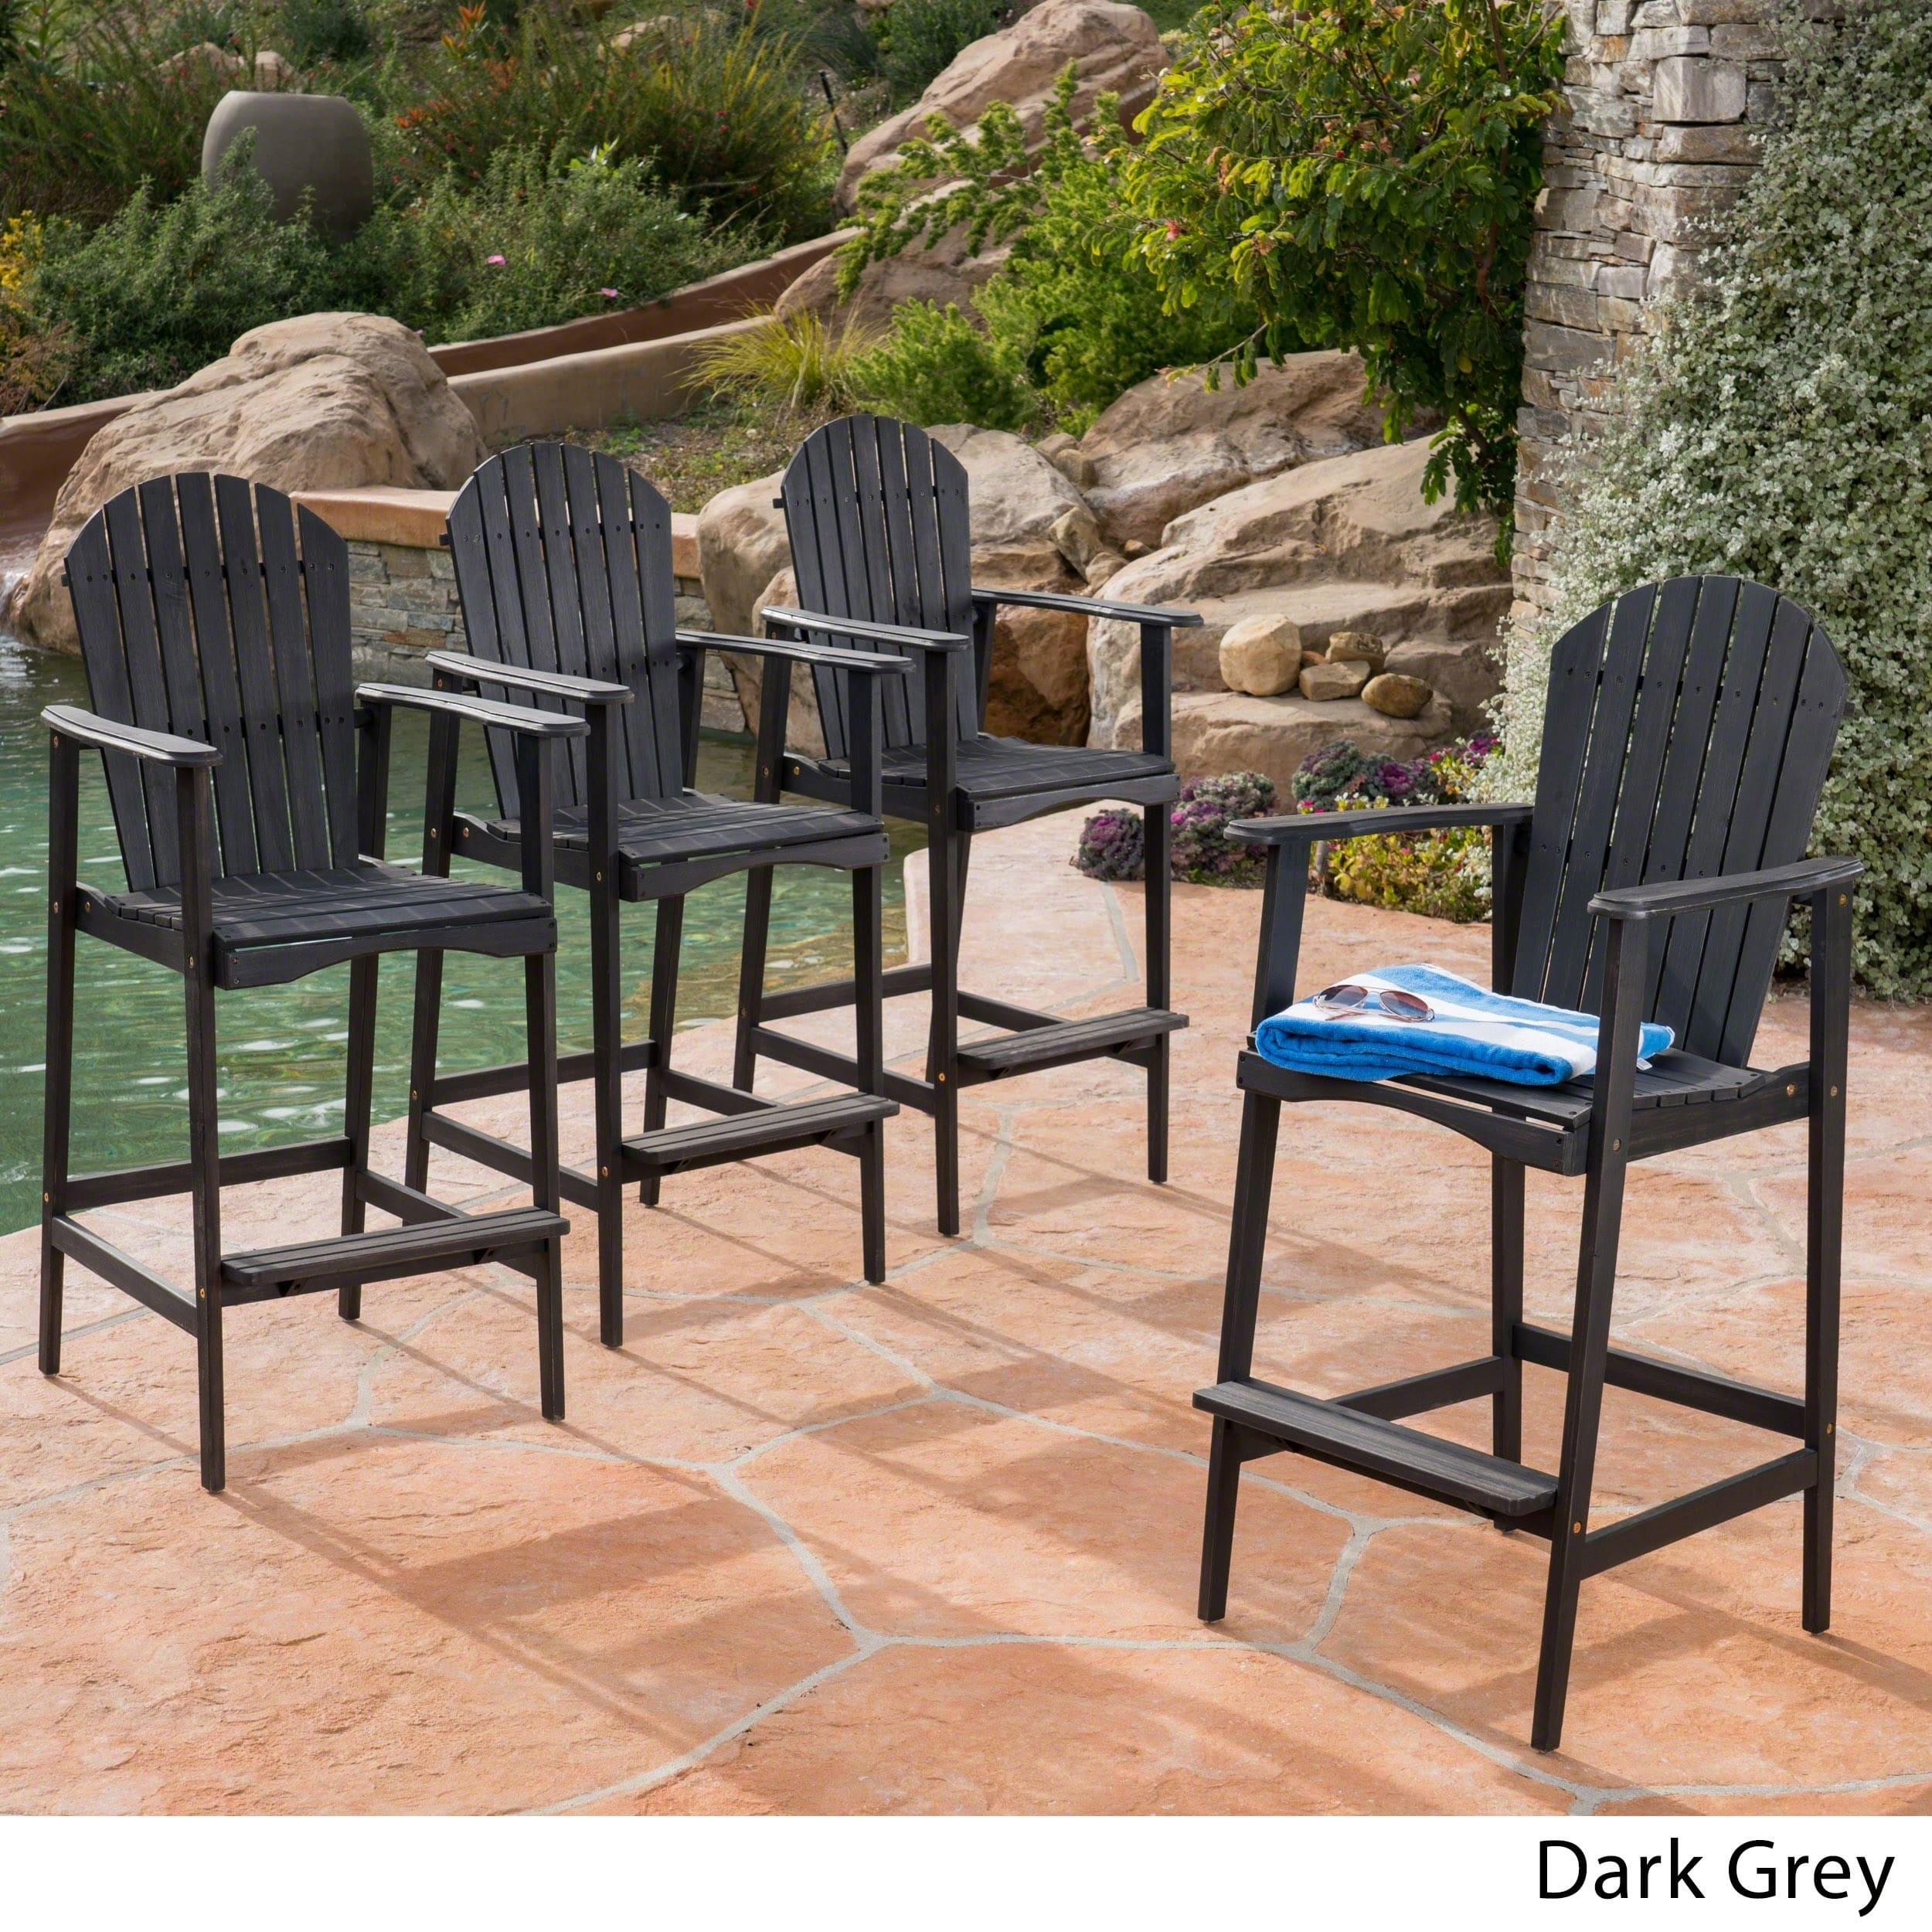 Christopher Knight Home Malibu Outdoor Wood Acacia Barstool (Set of 4) by